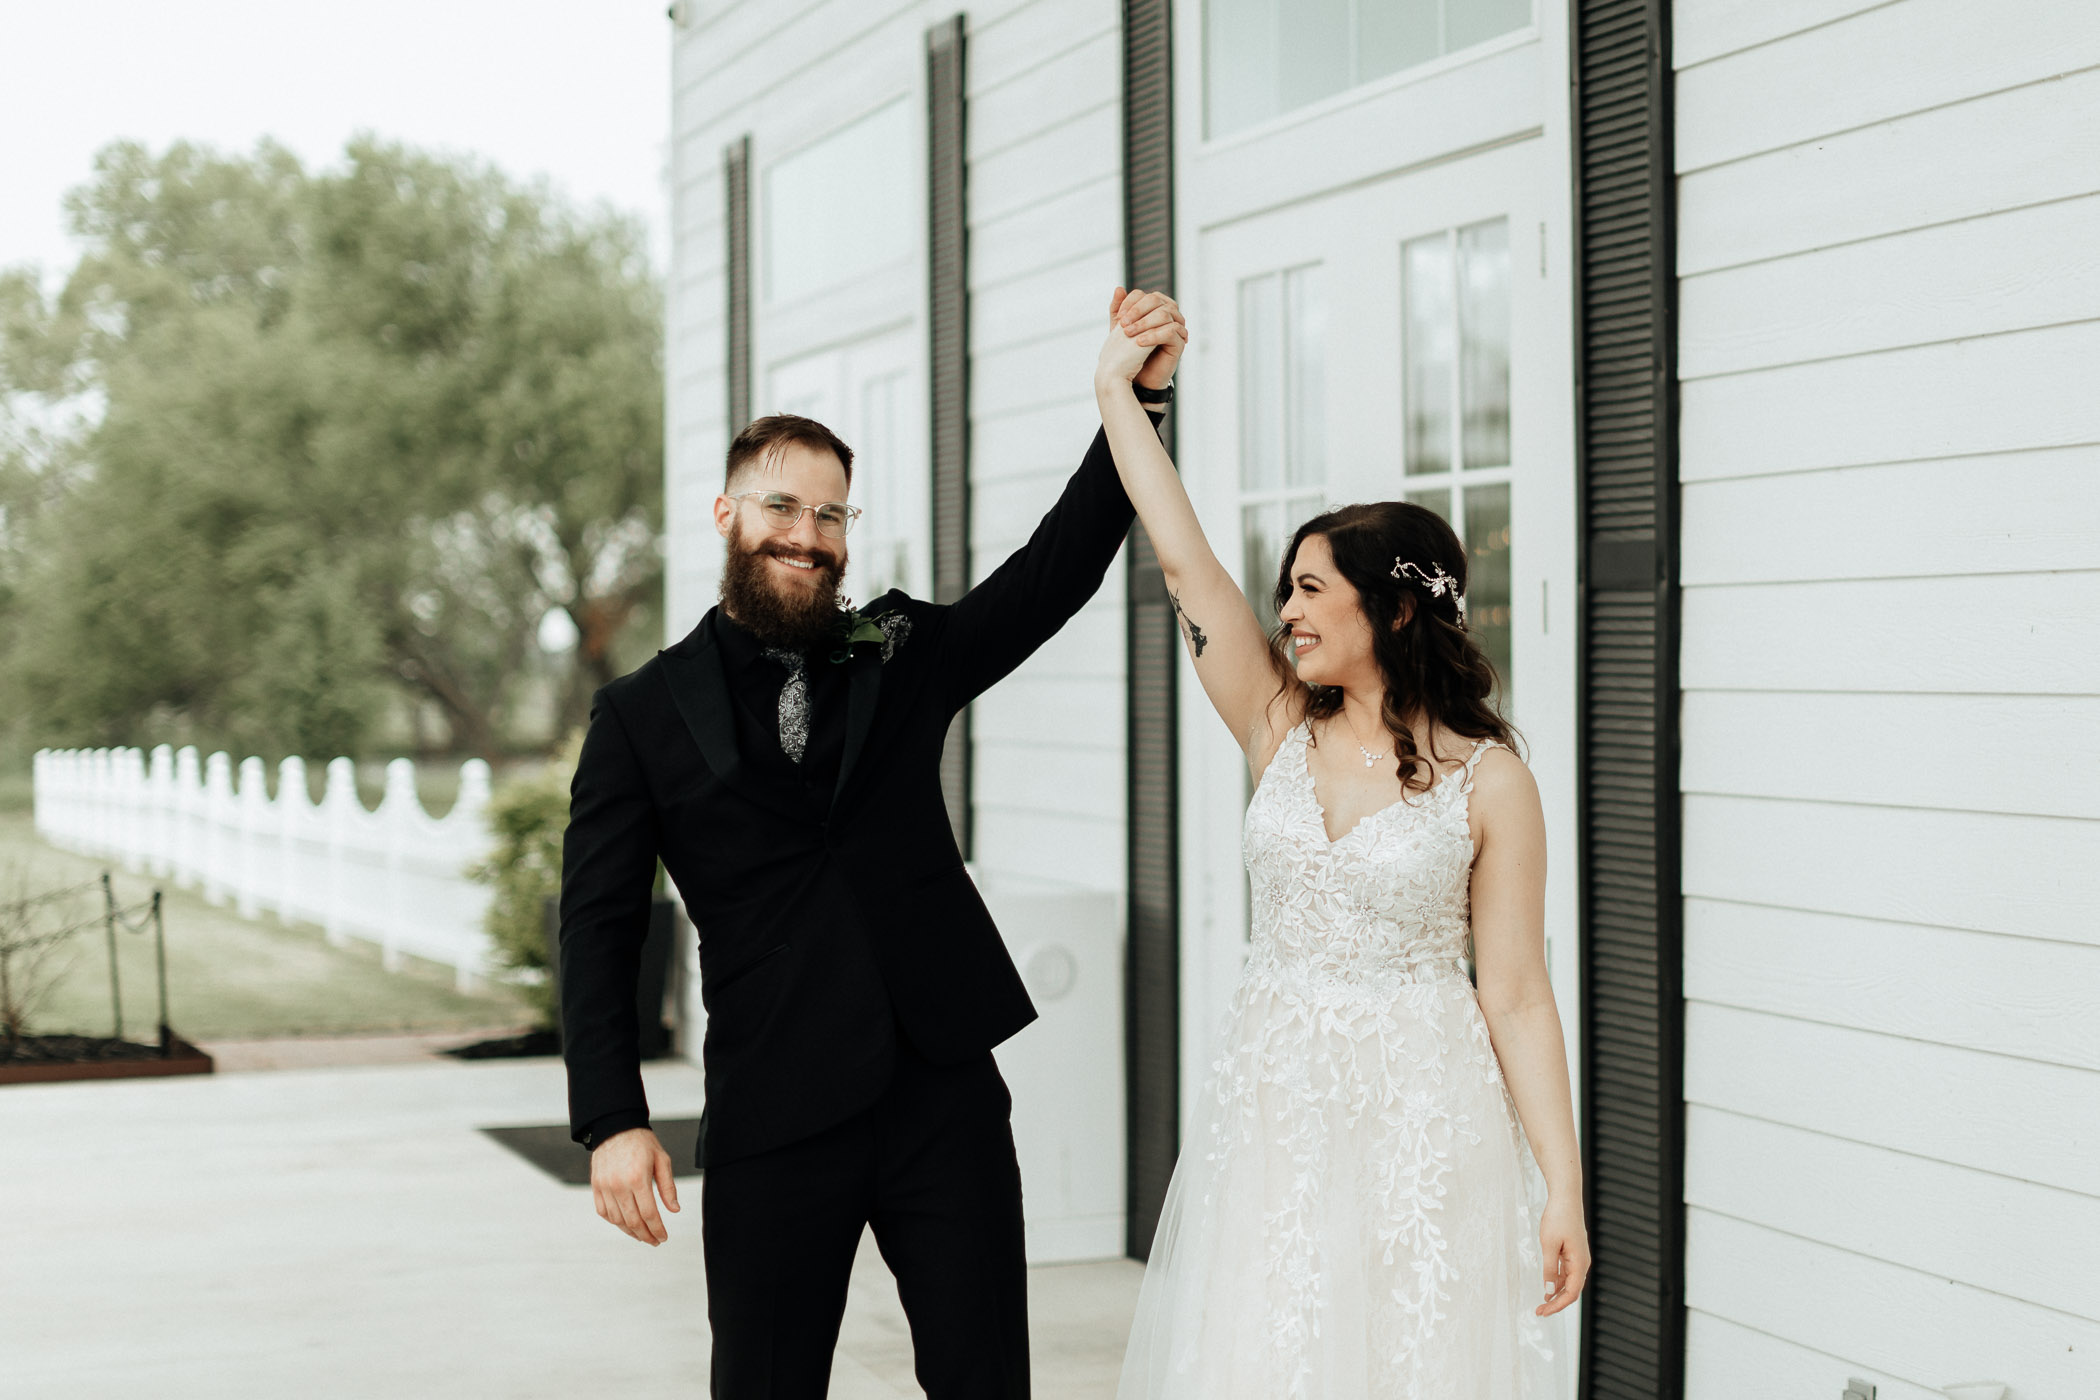 Bride and groom celebrating their recent wedding in DFW